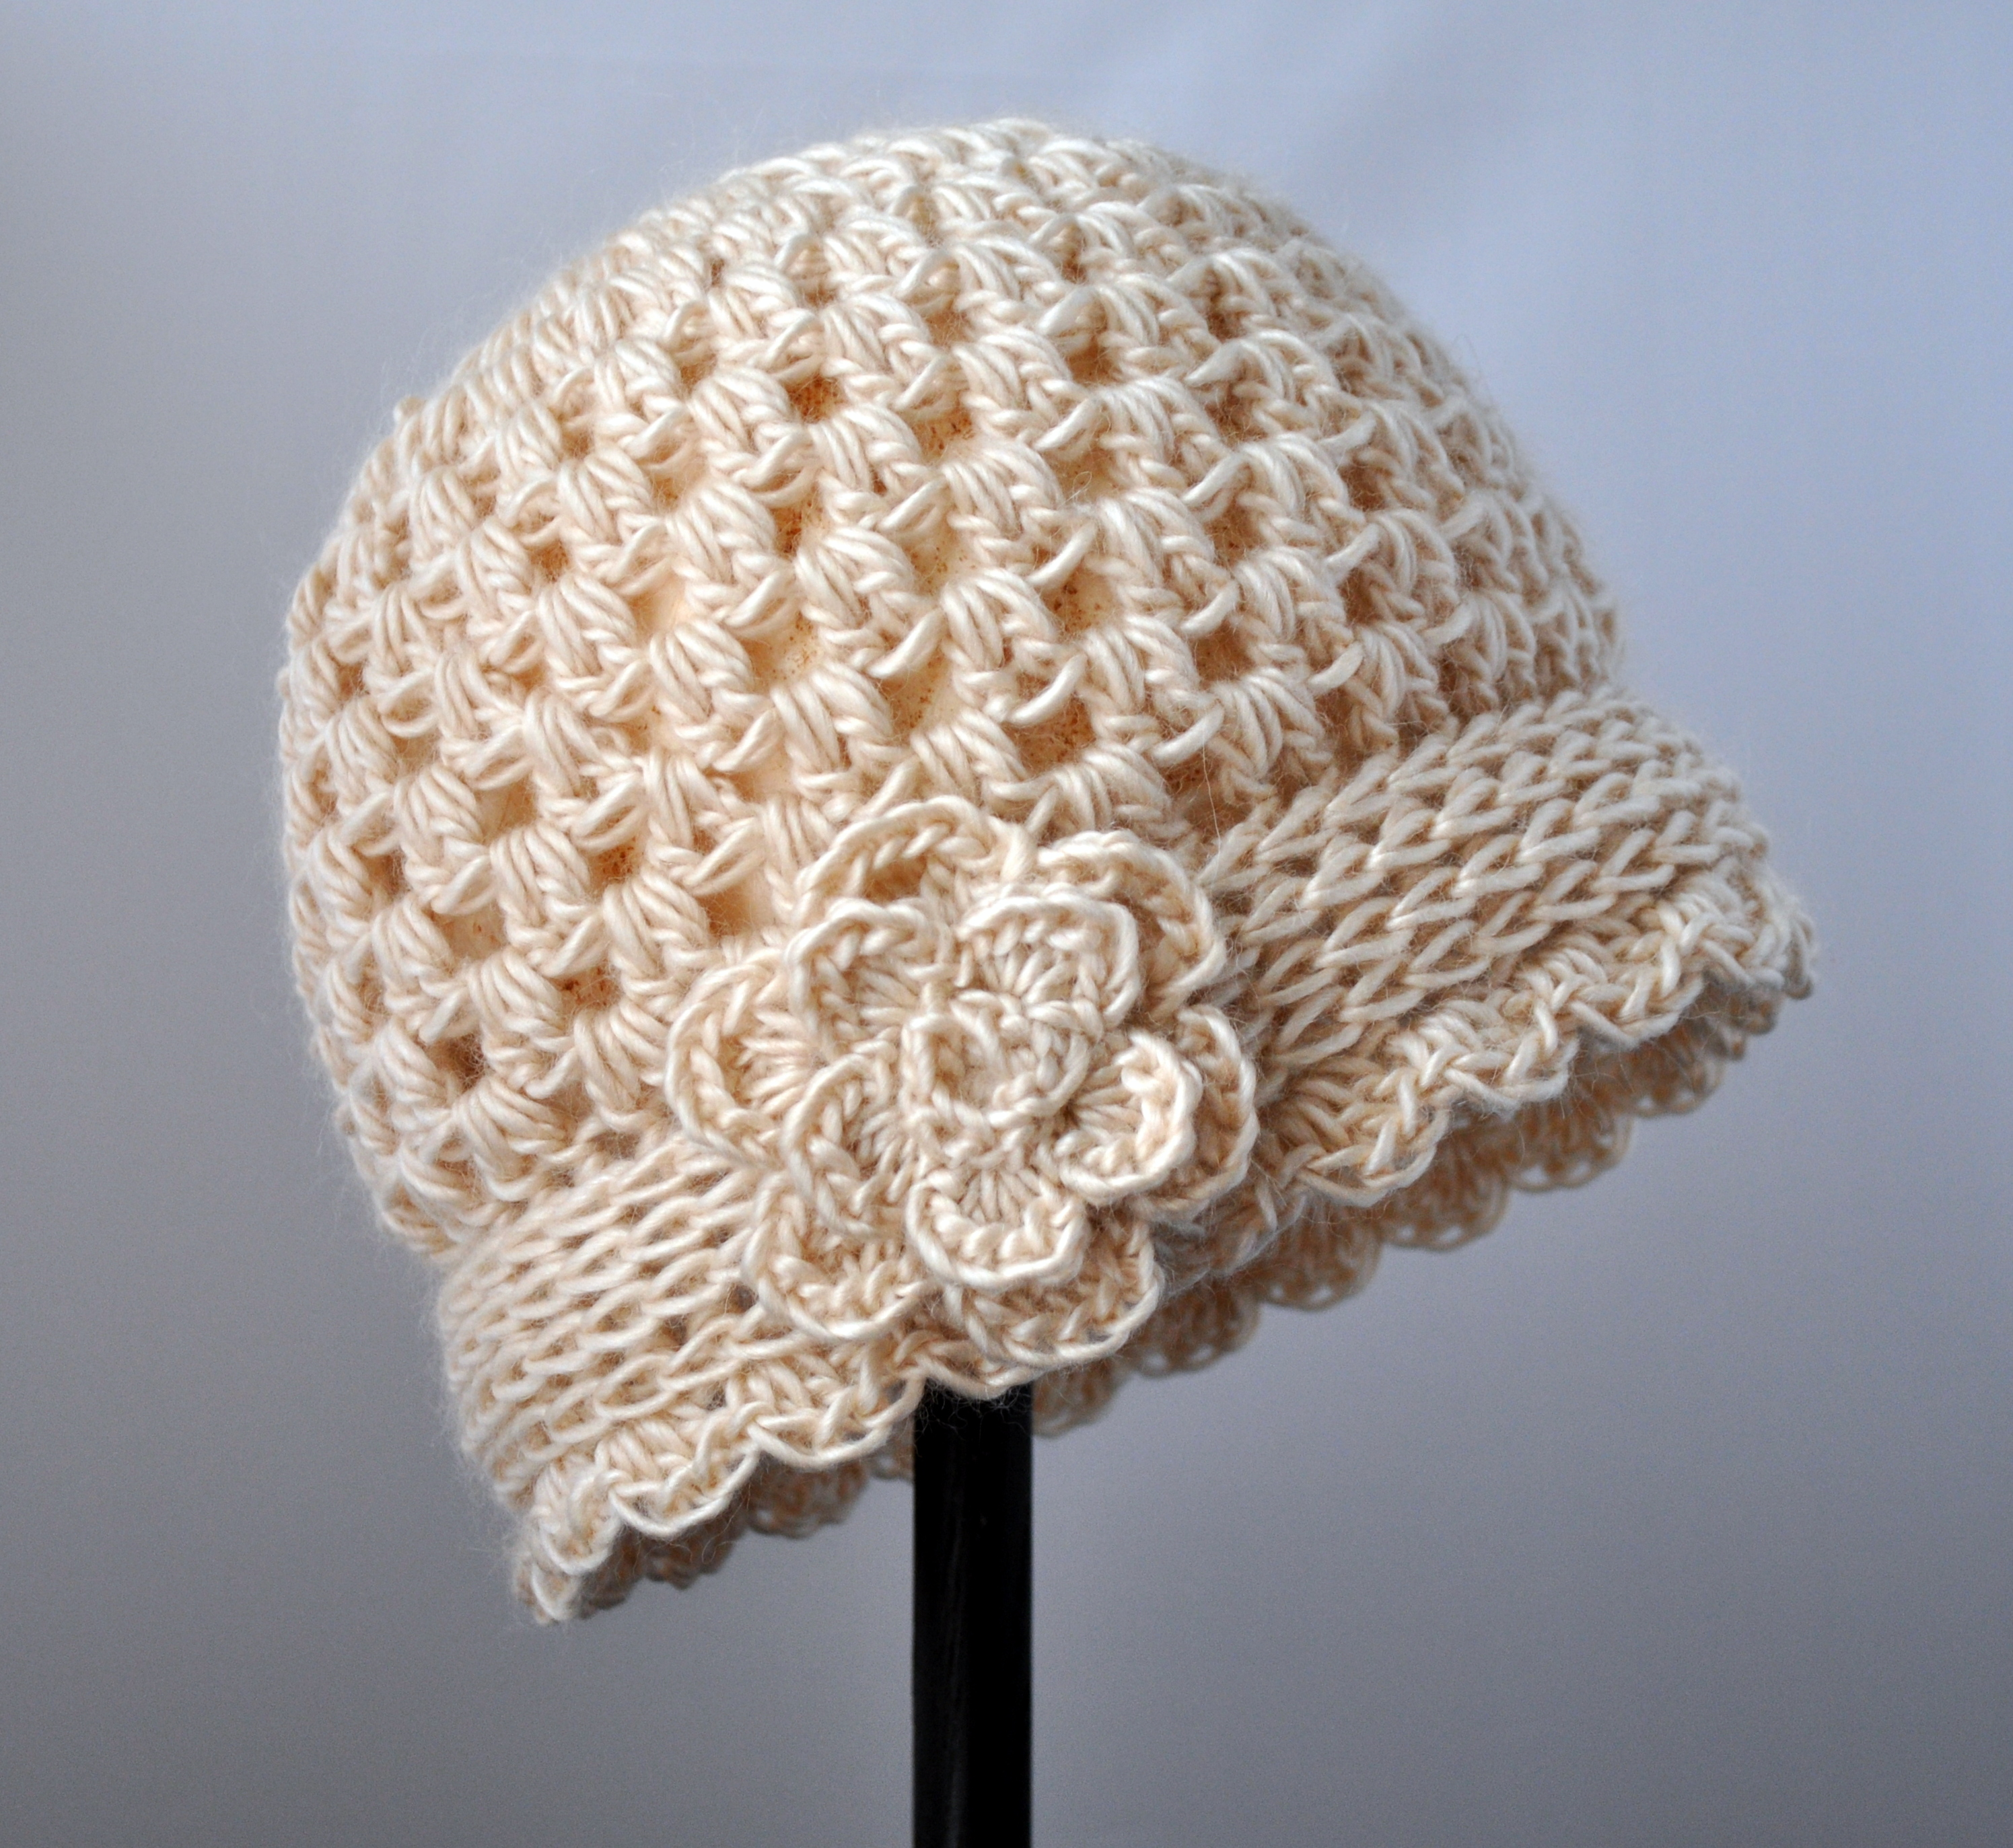 Crochet Patterns Classy Crochet